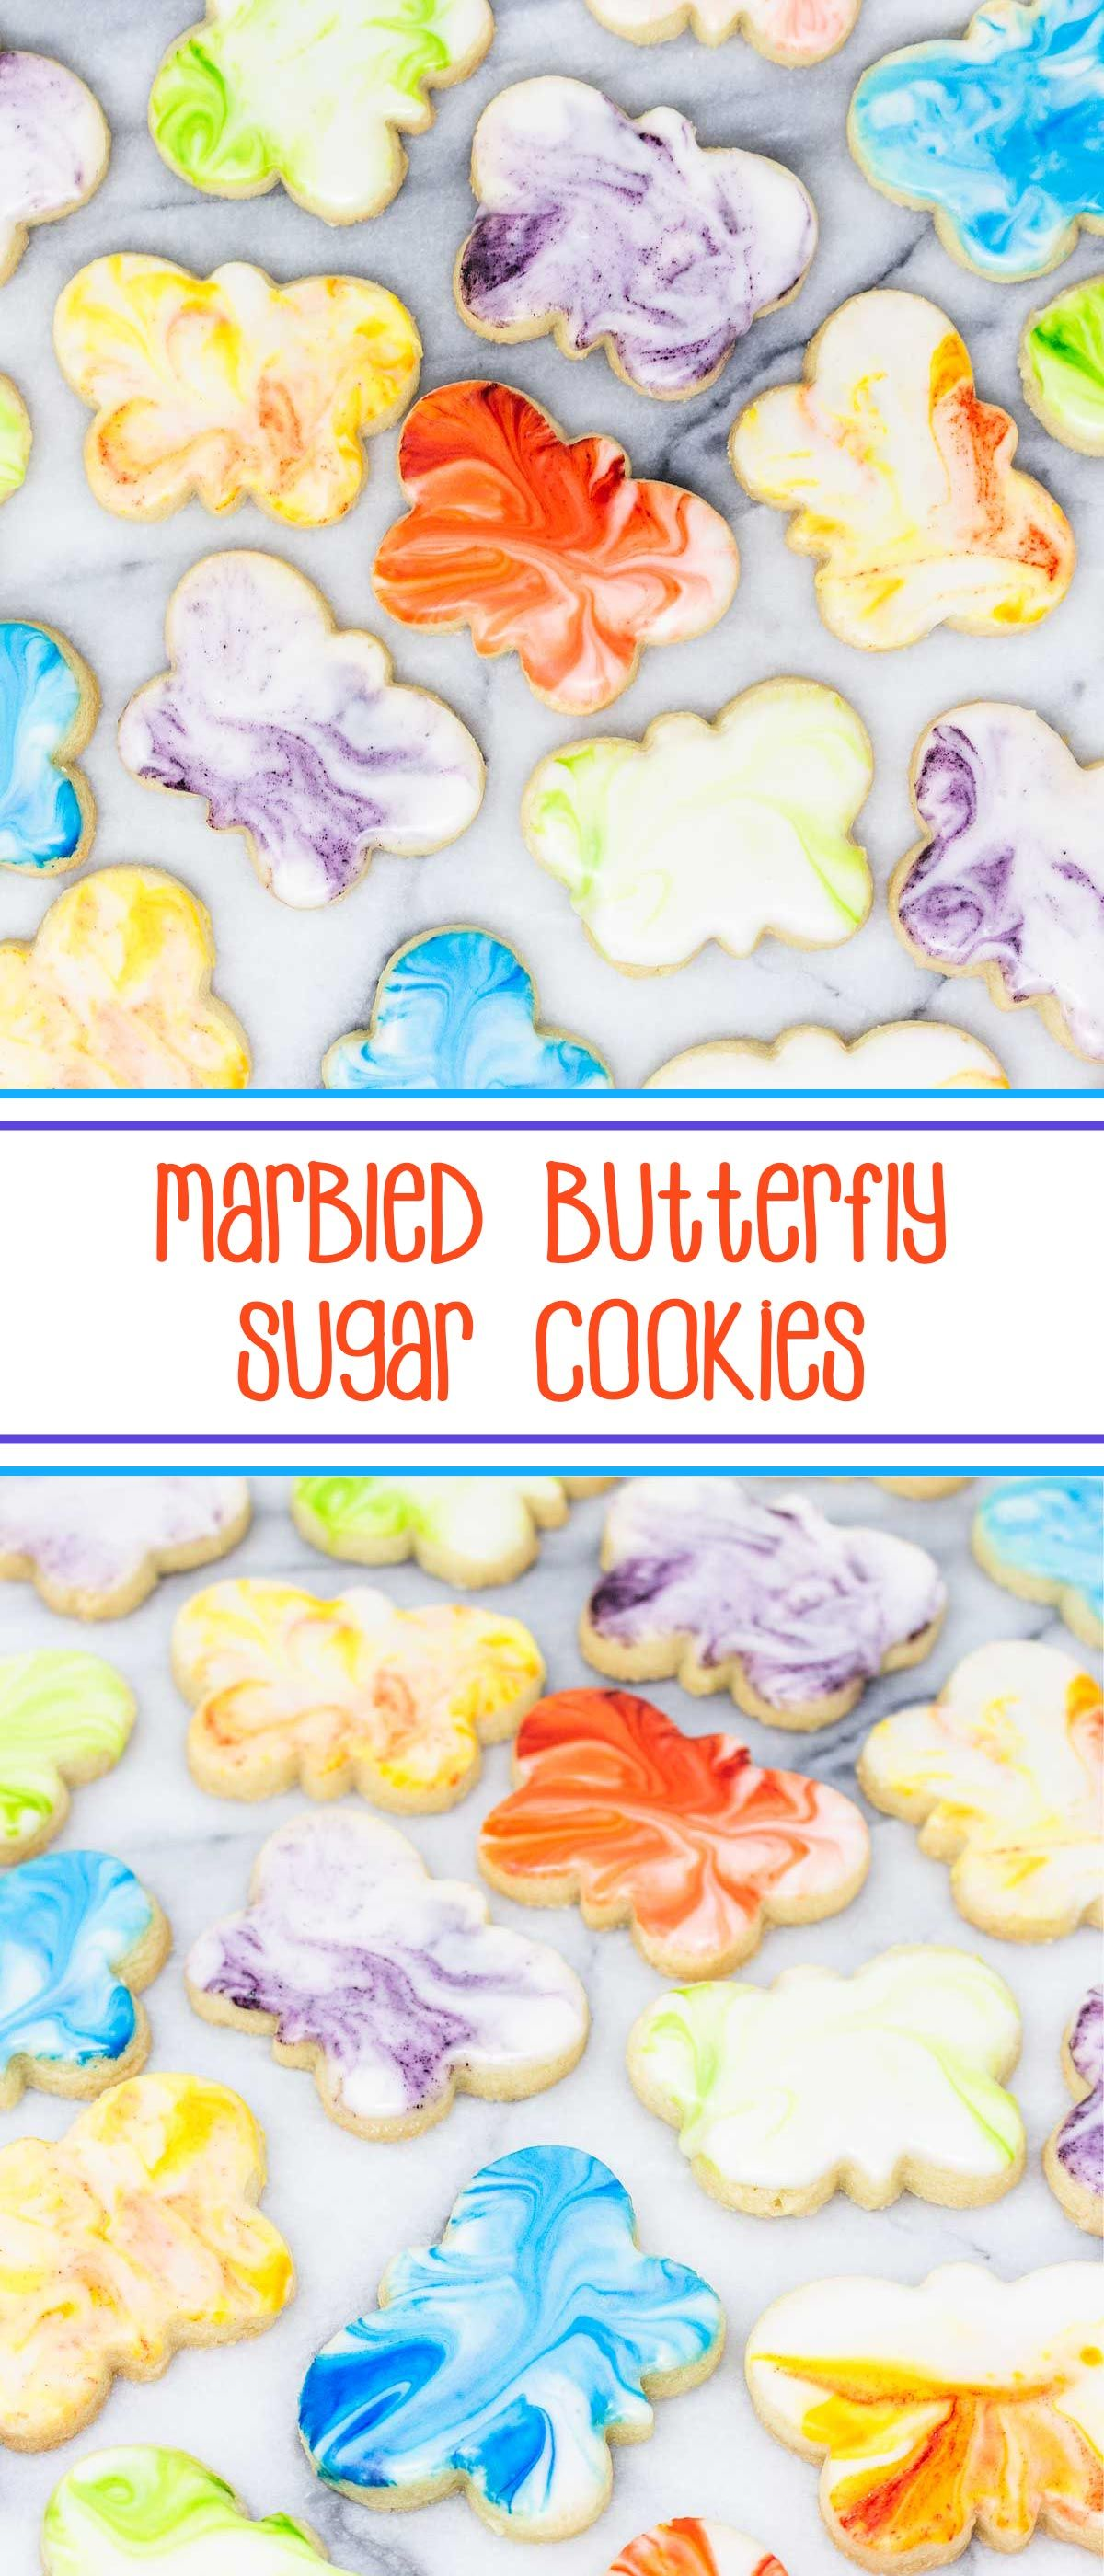 Marbled Butterfly Sugar Cookies - your favorite sugar cookies cut into butterfly shapes and frosted with marbleized royal icing; perfect spring Mother's Day cookies. #mothersdaycookies #decoratedcookies #sugarcookies #cutoutsugarcookies #butterflysugarcookies #marbledsugarcookies via @SarahsBakeStudio